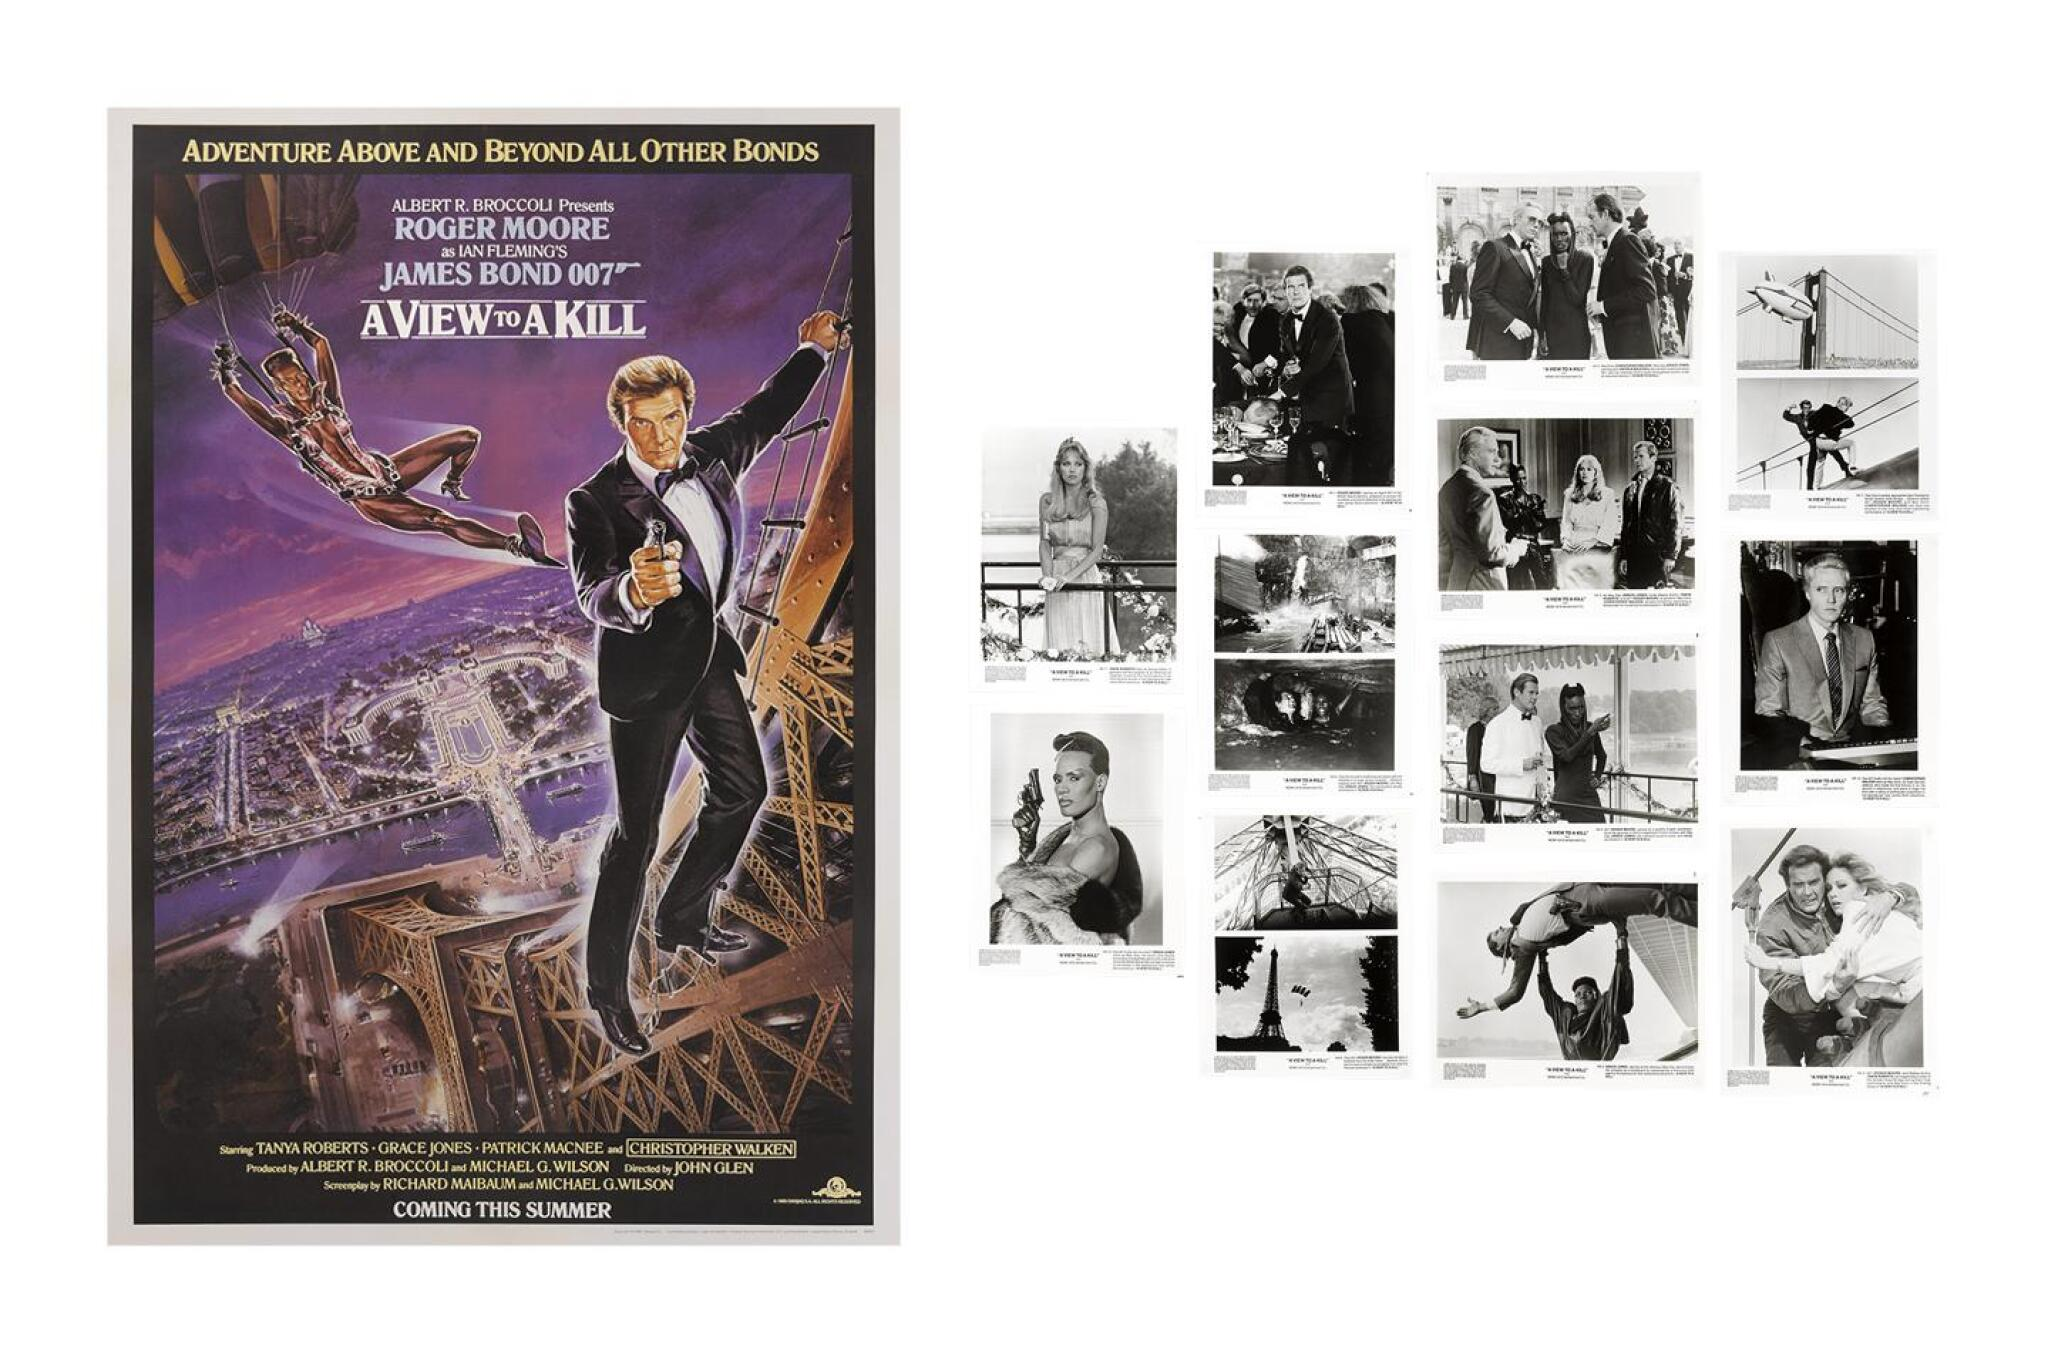 A VIEW TO A KILL (1985) POSTER, BRITISH, ADVANCE (PURPLE STYLE), BRITISH, WITH ORIGINAL PHOTOGRAPHIC PRODUCTION STILLS, US